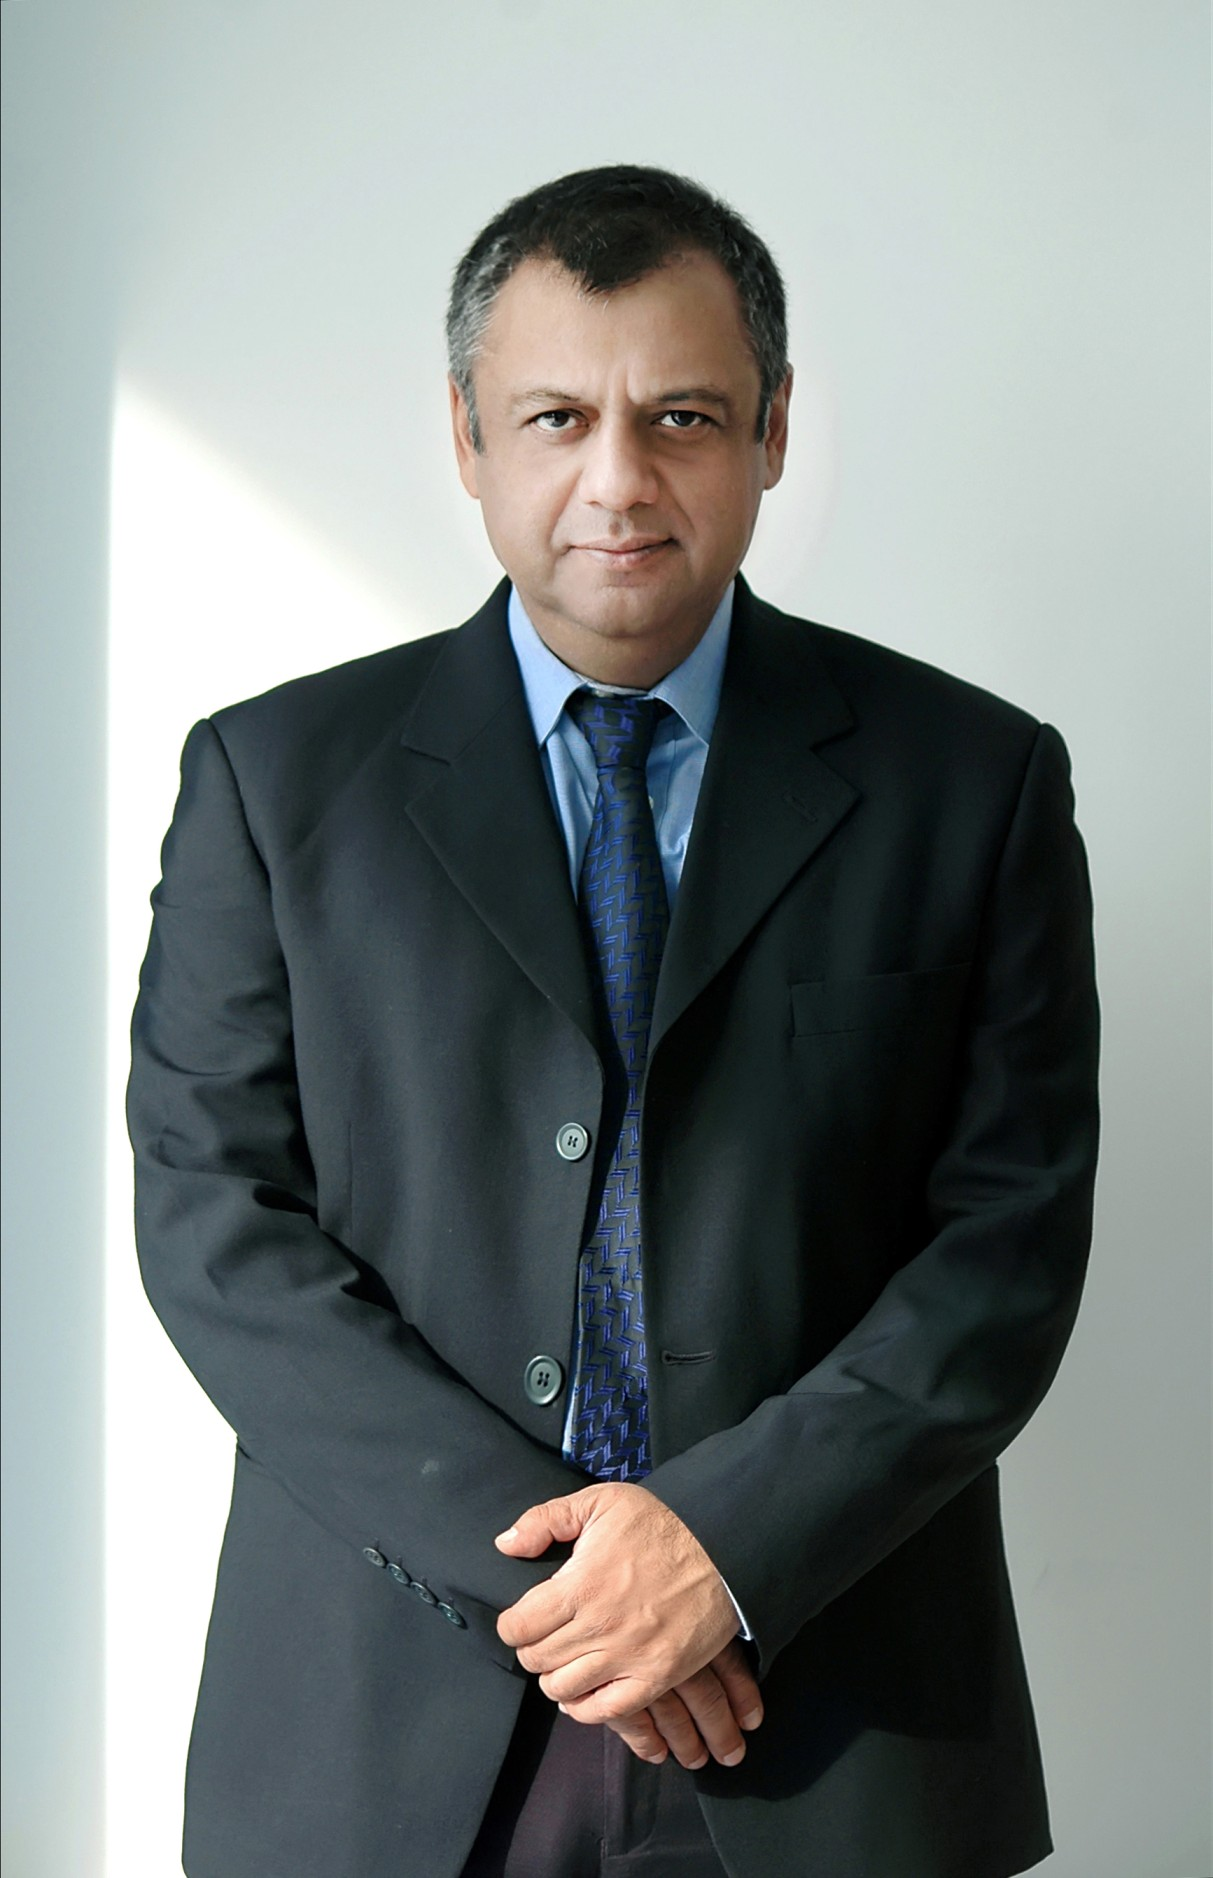 Mr. Raman Kaushal